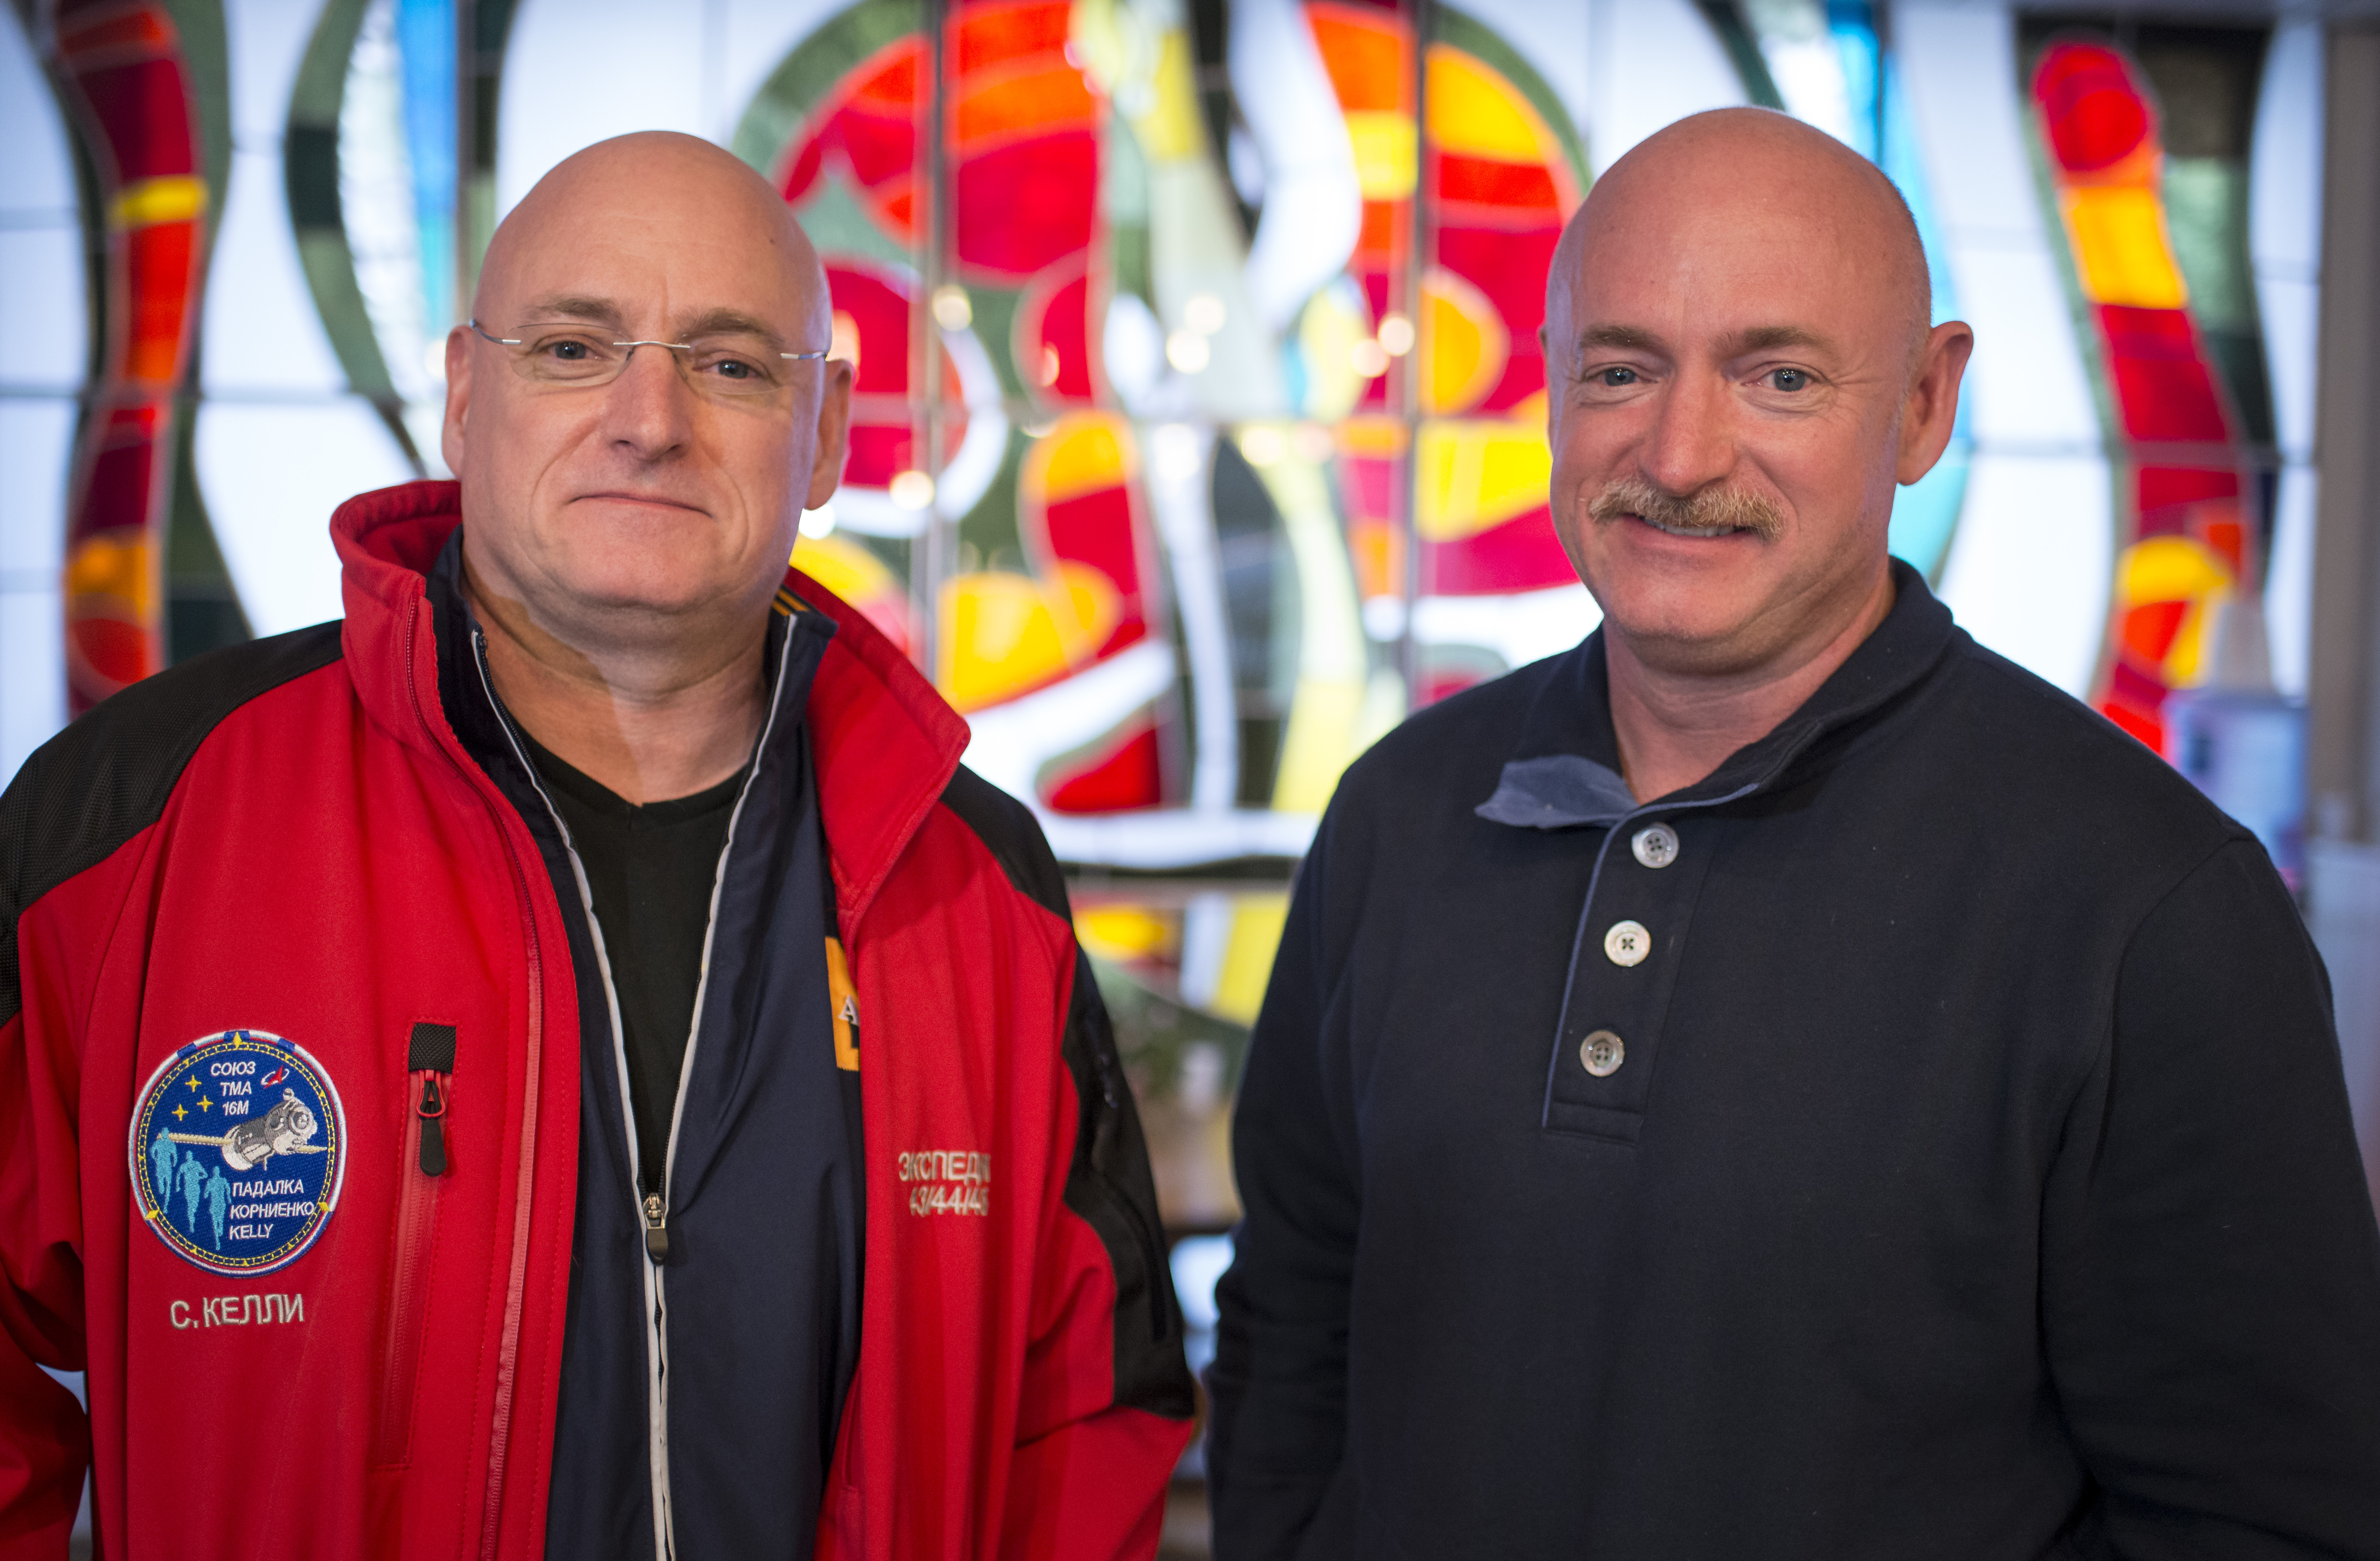 BAIKONUR, KAZAKHSTAN - MARCH 26: Expedition 43 NASA Astronaut Scott Kelly, left, and his identical twin brother Mark Kelly, pose for a photograph Thursday, March 26, 2015 at the Cosmonaut Hotel in Baikonur, Kazakhstan. (Photo by Bill Ingalls/NASA via Getty Images)